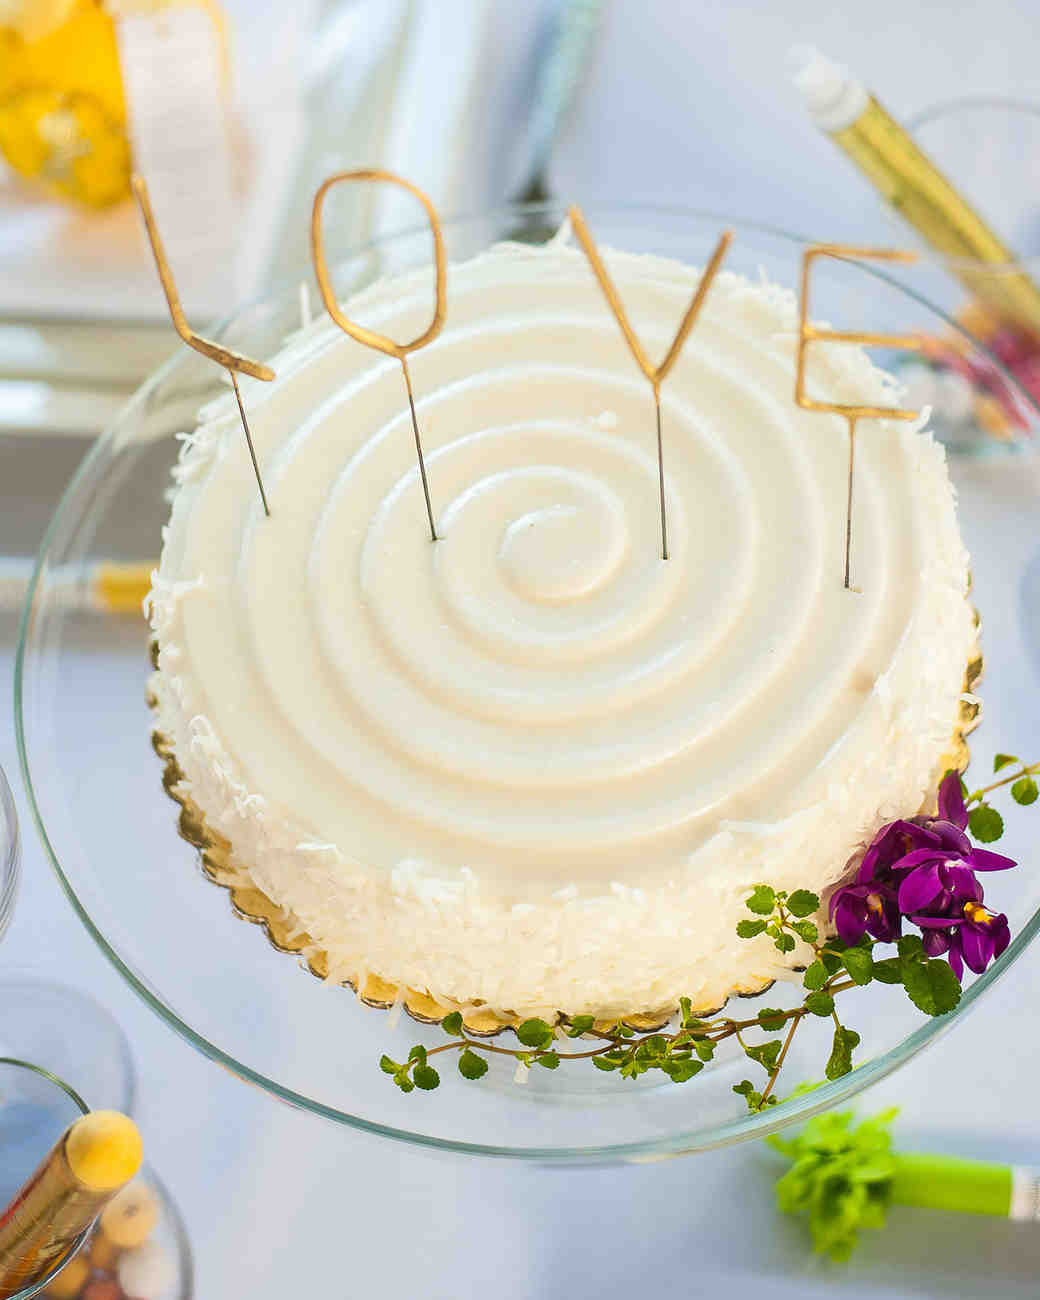 21 Adorably Unusual Wedding Cake Toppers 21 Adorably Unusual Wedding Cake Toppers new pictures